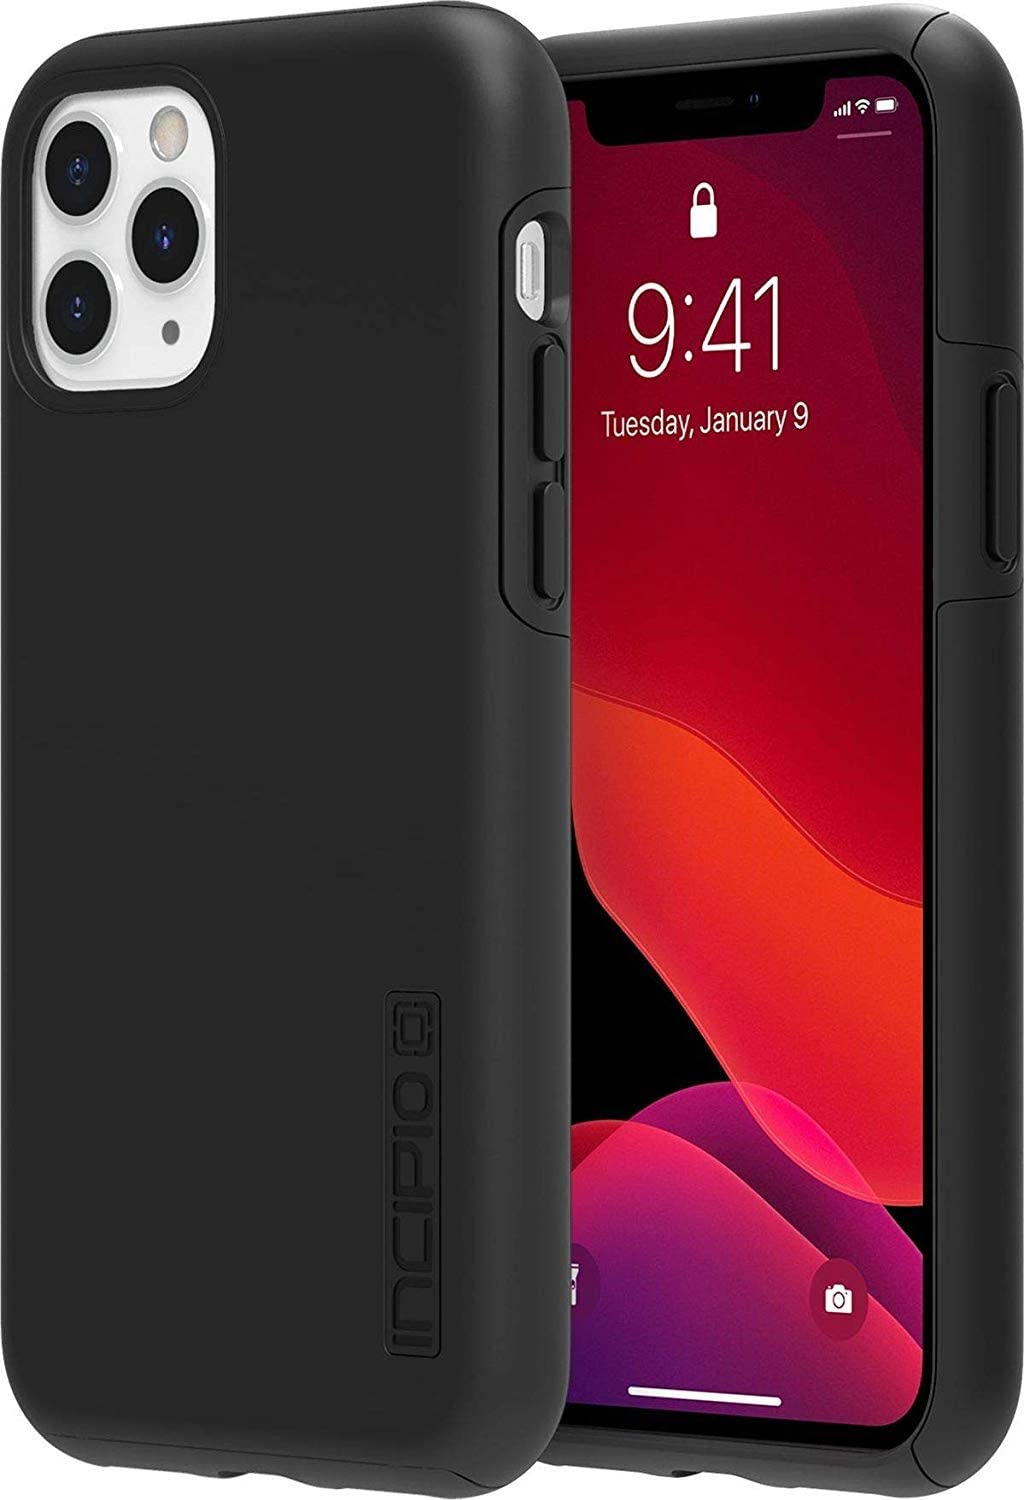 Incipio DualPro Dual Layer Case for Apple iPhone 11 Pro Max with Flexible Shock-Absorbing Drop-Protection - Black